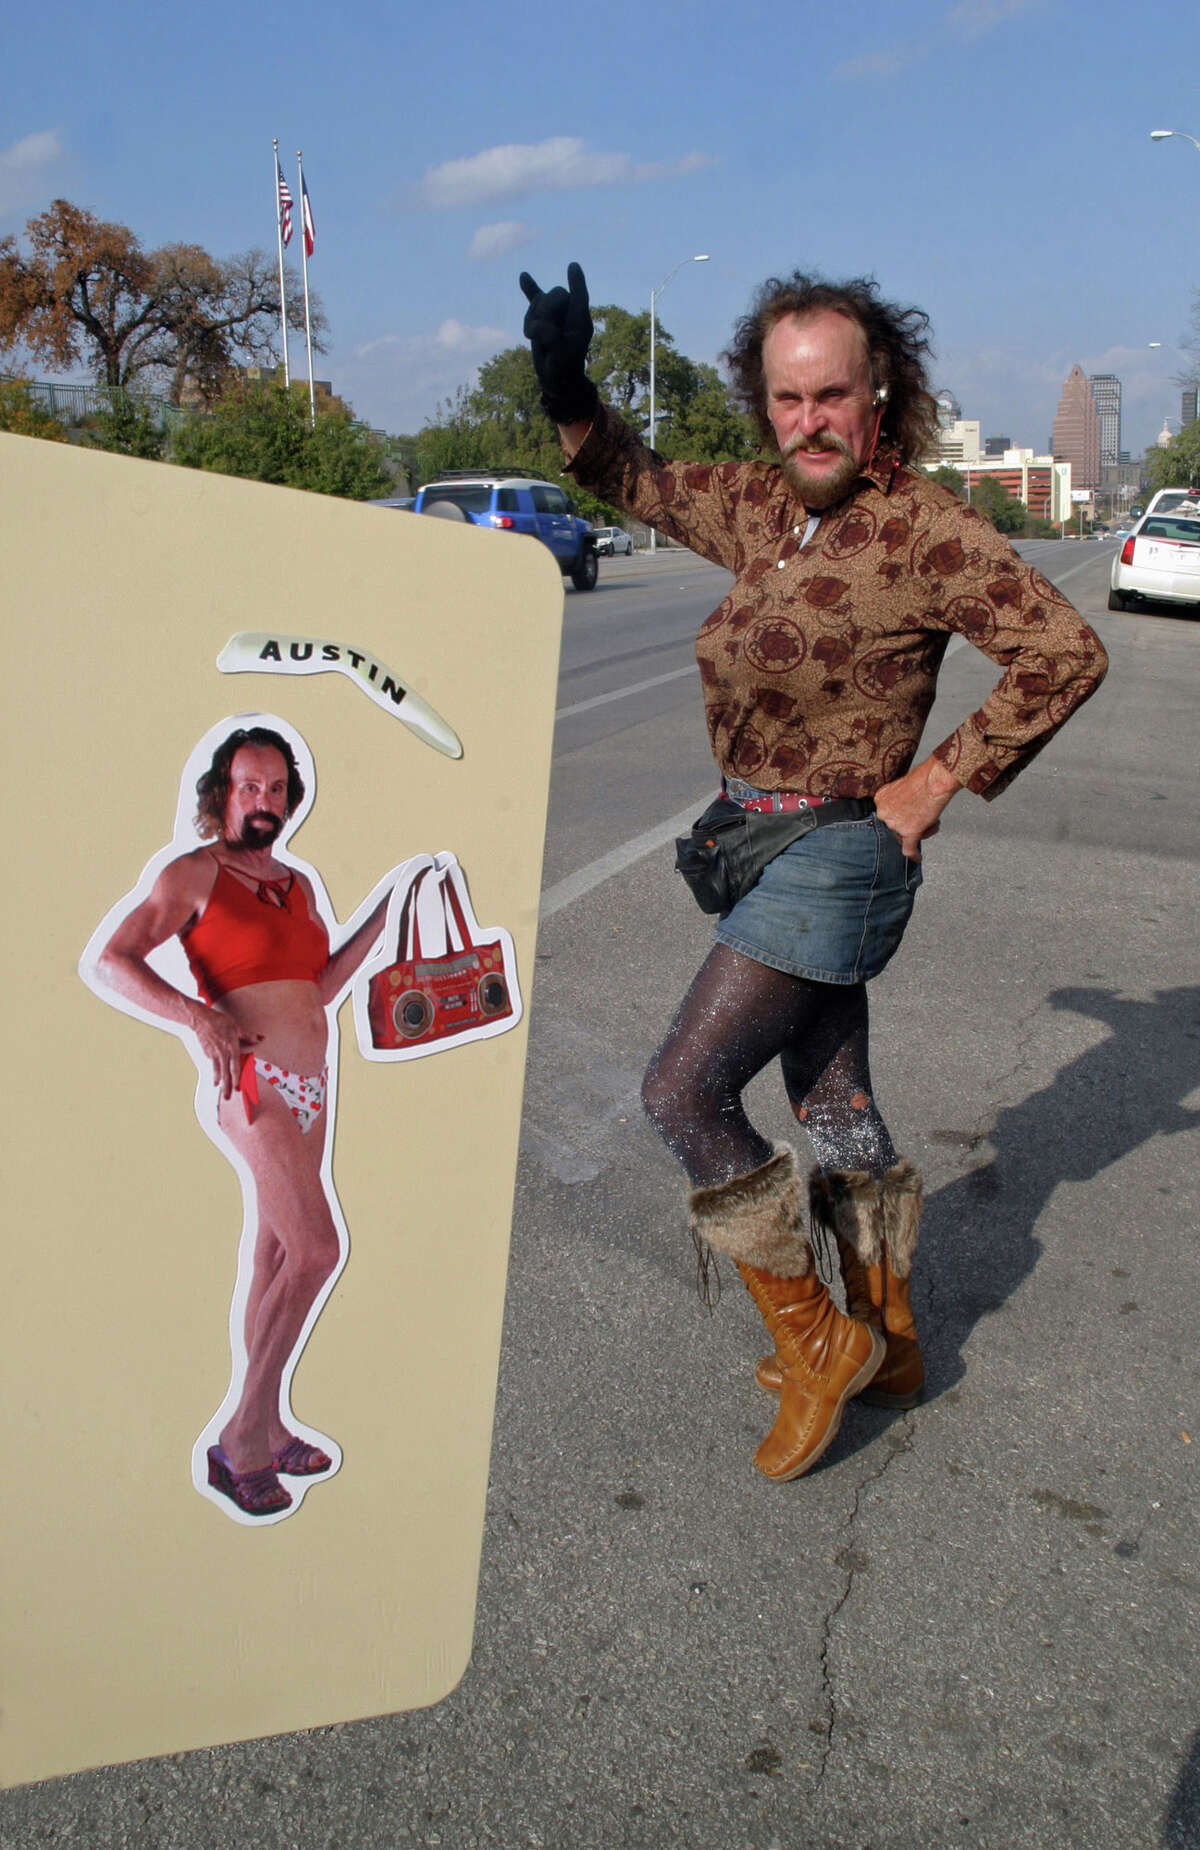 Local homeless, cross dressing personality Leslie Cochran poses with a new refrigerator magnet bearing his likeness along South Congress Ave. in Austin, Texas on Thursday, Dec. 14, 2006. (AP Photo/Jack Plunkett)